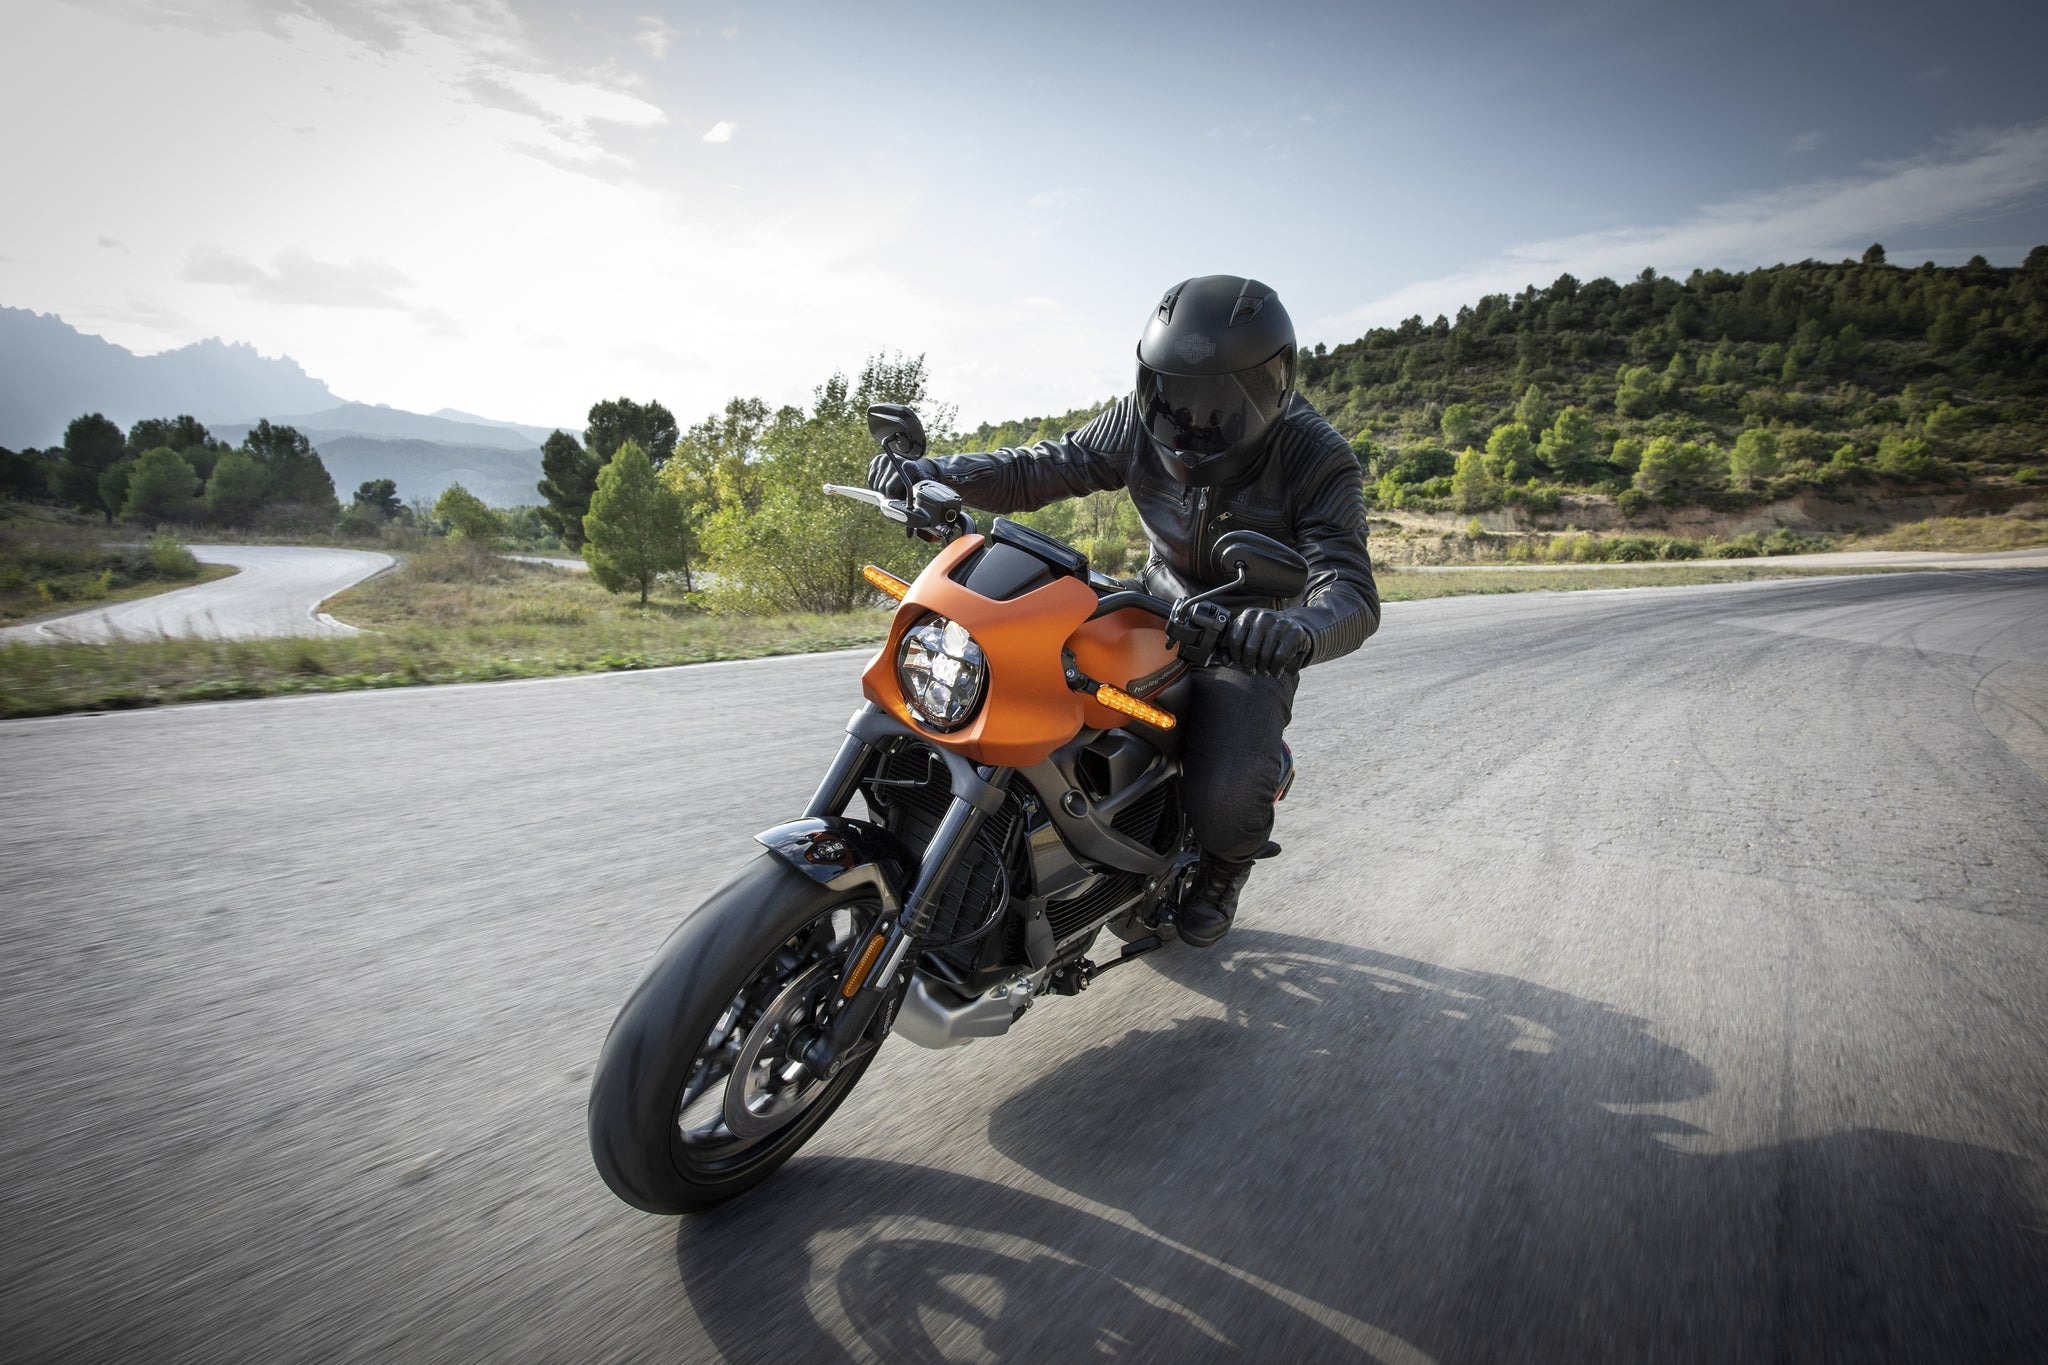 The Best Motorcycle Gear You Can't Live Without